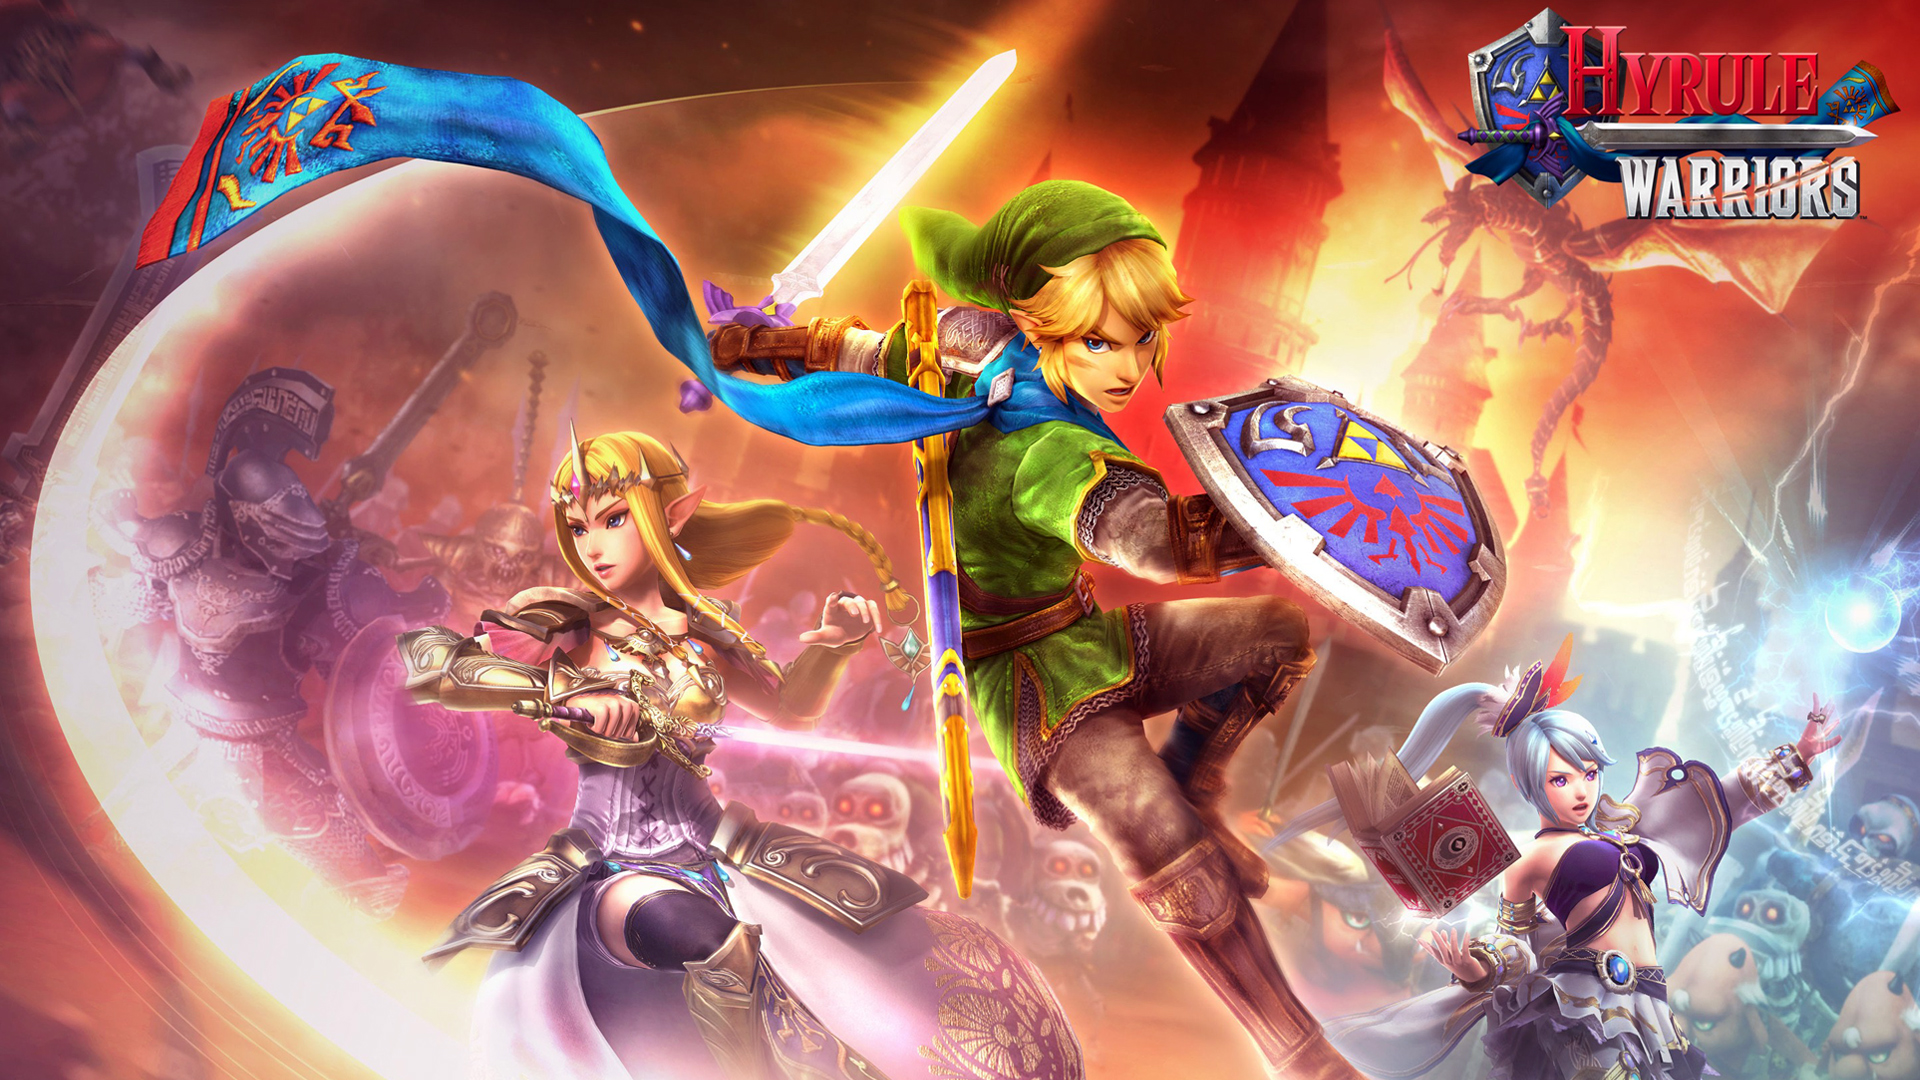 Link Hyrule Warriors Wallpaper HD